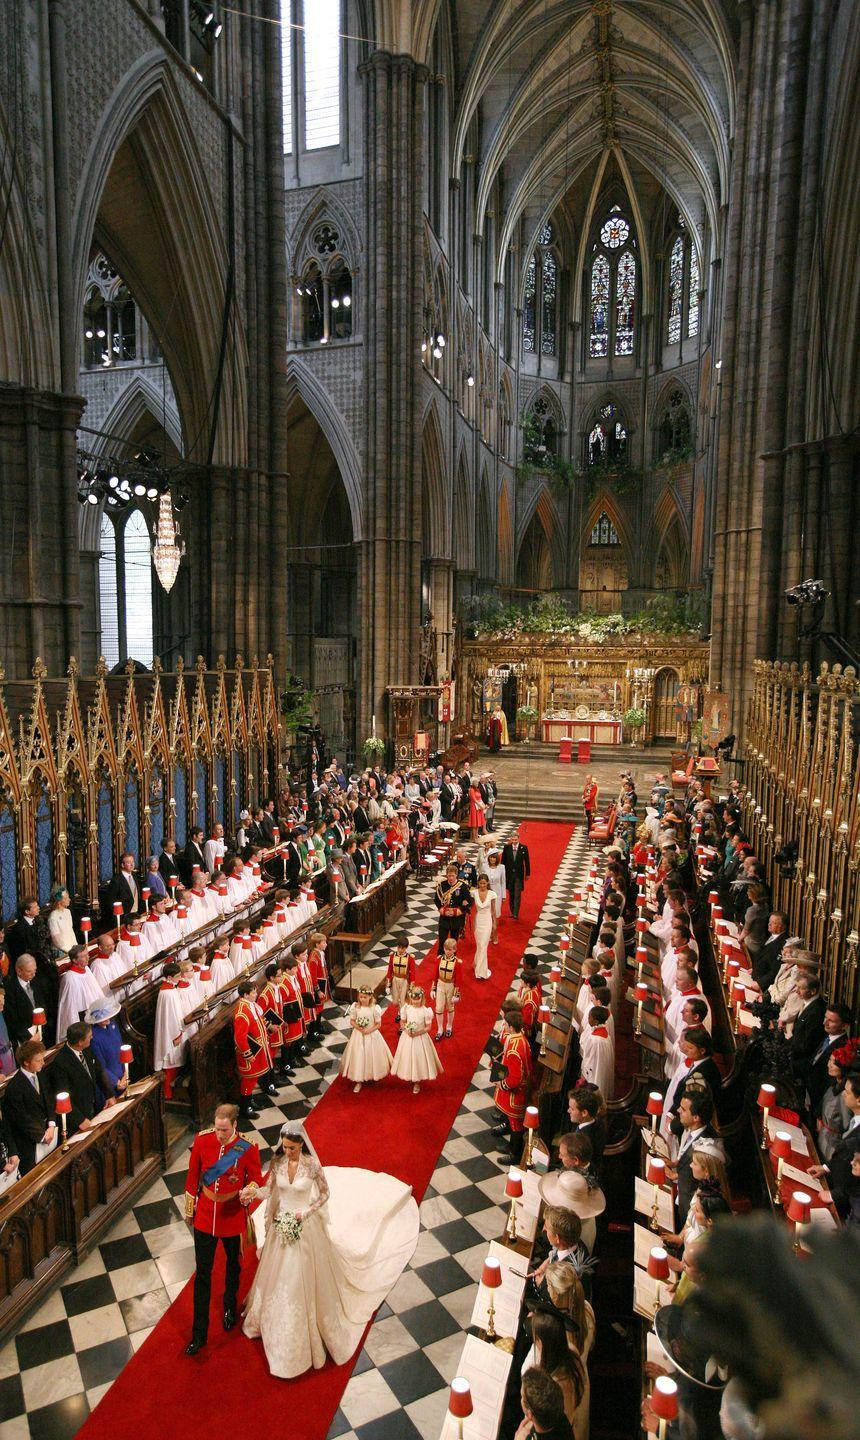 "<p>The Abbey was decorated with six English Field Maple tress and two Hornbeam trees which measured 20 feet-high. Floral designer Shane Connolly decorated the venue.<br></p><p>Following the ceremony, one clergyman was caught on camera elatedly cartwheeling down the aisle.</p><p>Watch the hilarious moment <a href=""https://www.youtube.com/watch?time_continue=21&v=Z5_csW4bDCg&feature=emb_title"" rel=""nofollow noopener"" target=""_blank"" data-ylk=""slk:here"" class=""link rapid-noclick-resp"">here</a>. </p>"